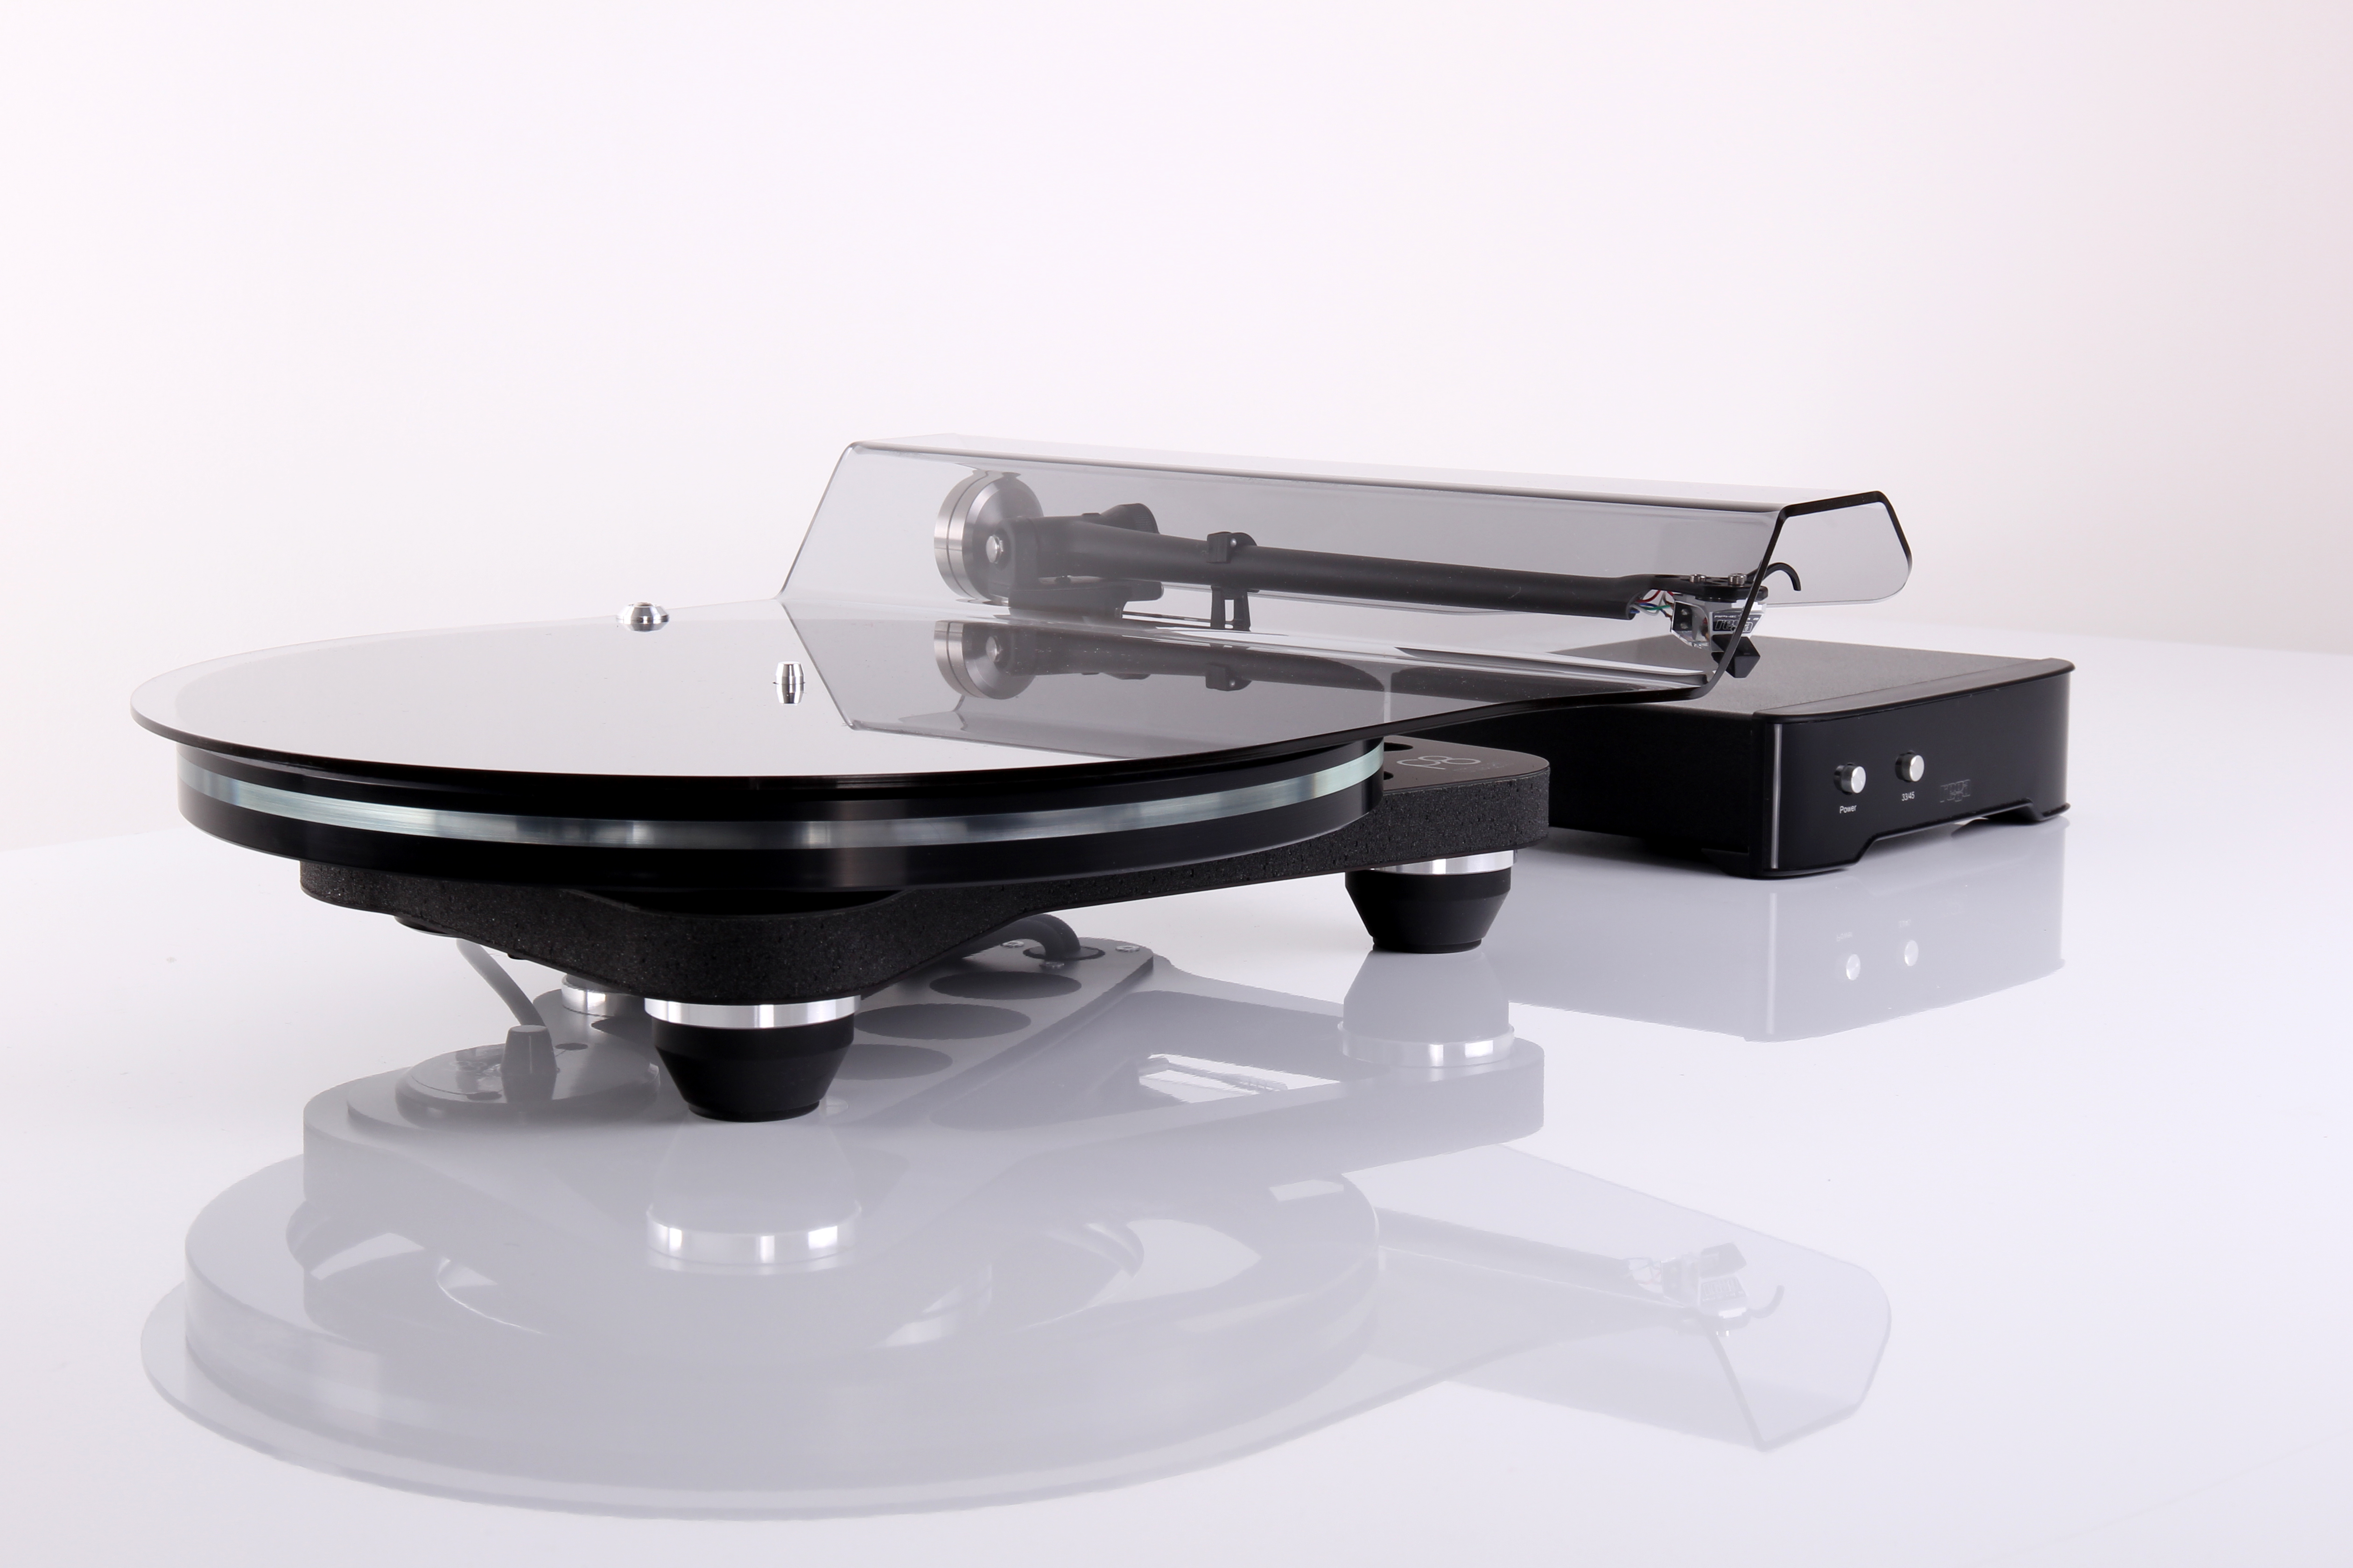 Rega's Planar 8 Turntable